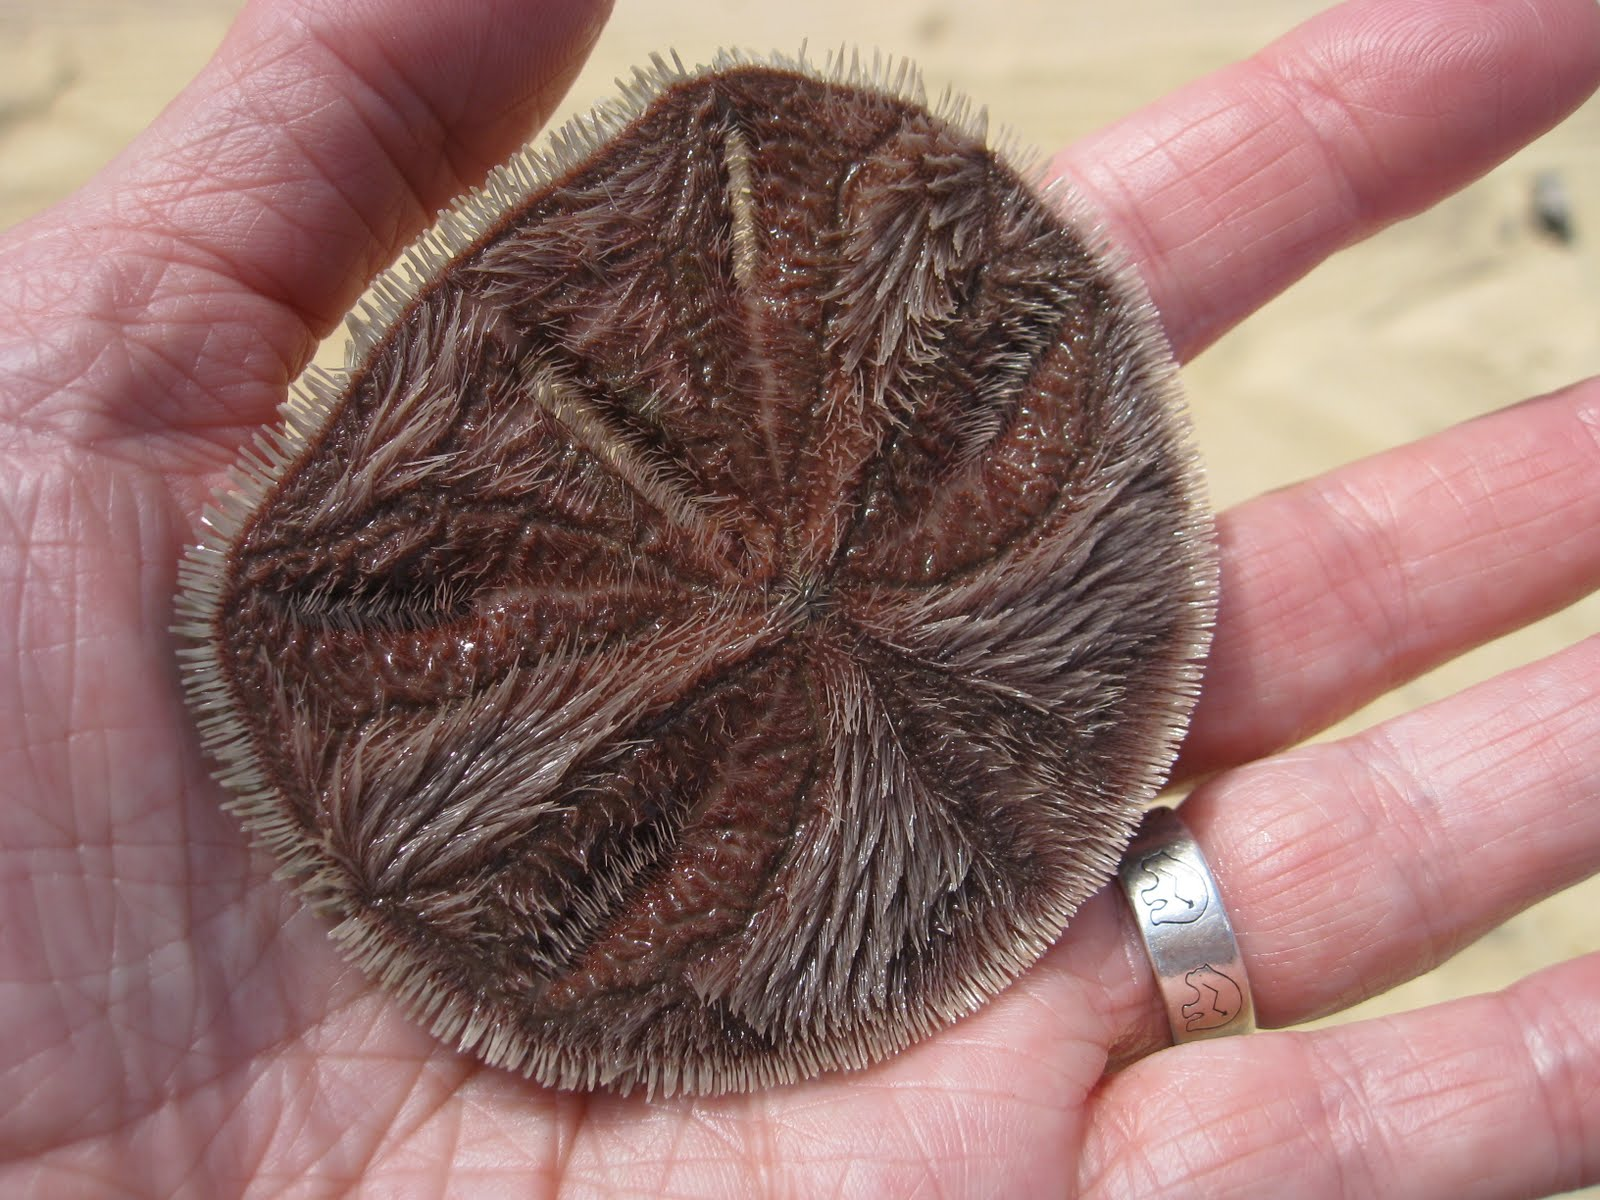 How Much Is a Sand Dollar Worth? | Wonderopolis